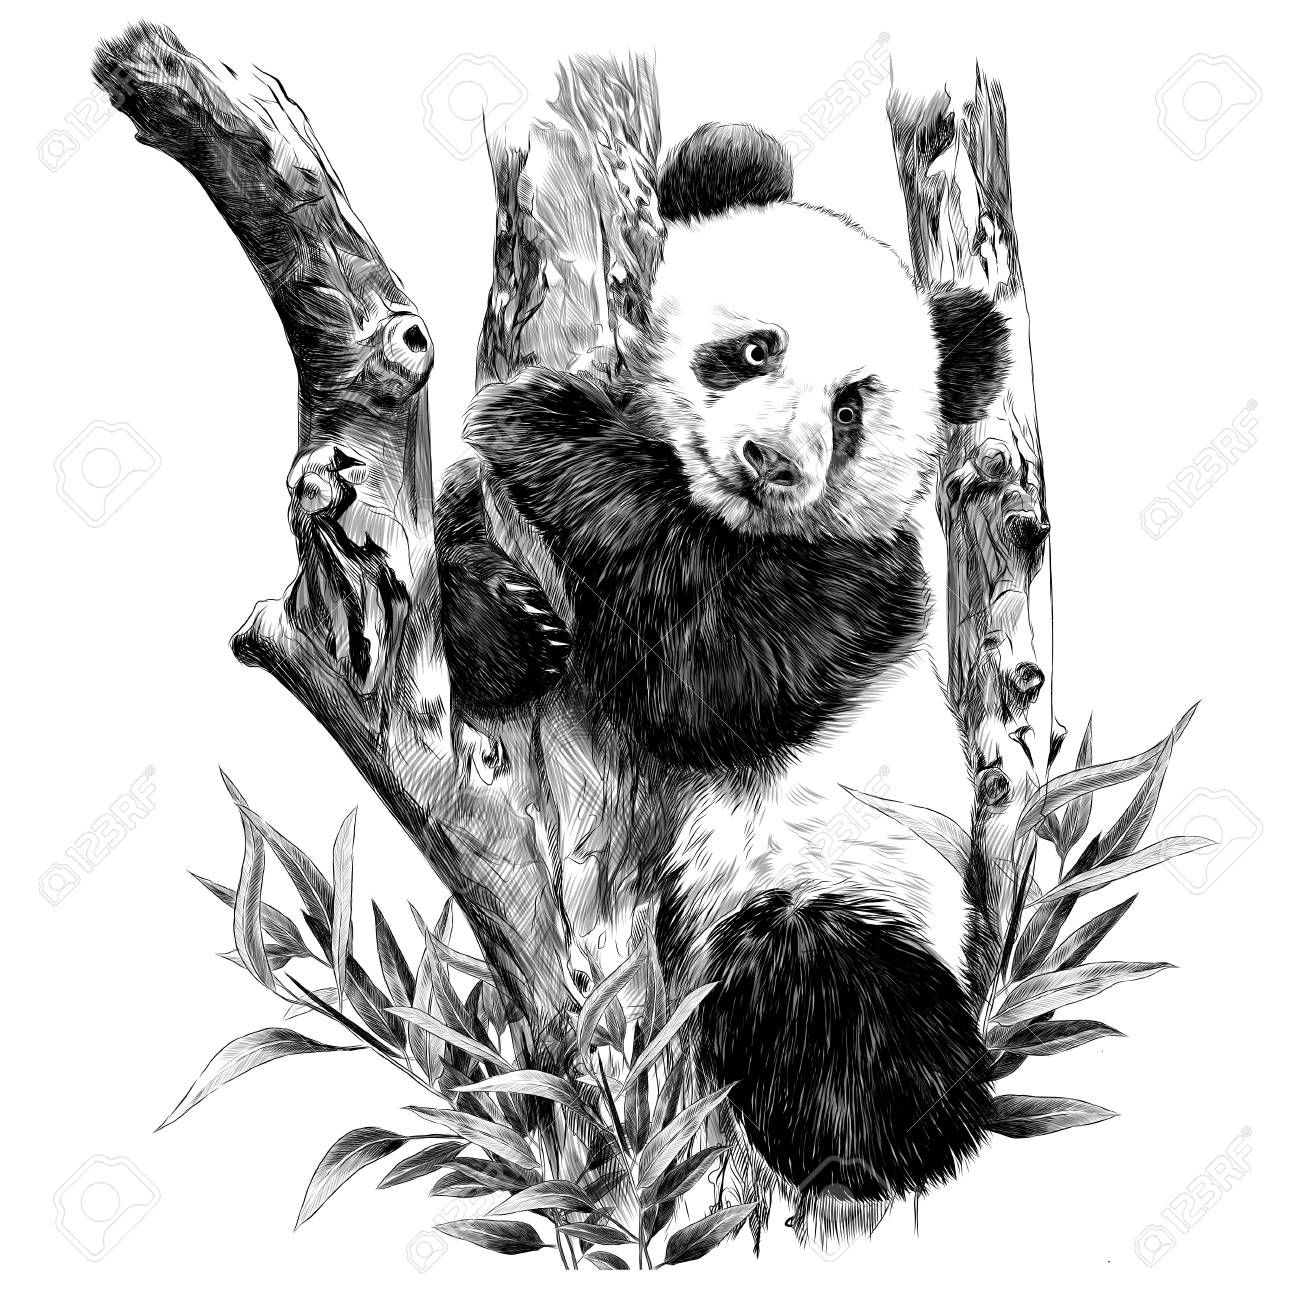 Panda rests on a branch hugging the sheets of sketch vector graphics monochrome black-and-white picture - 96185949